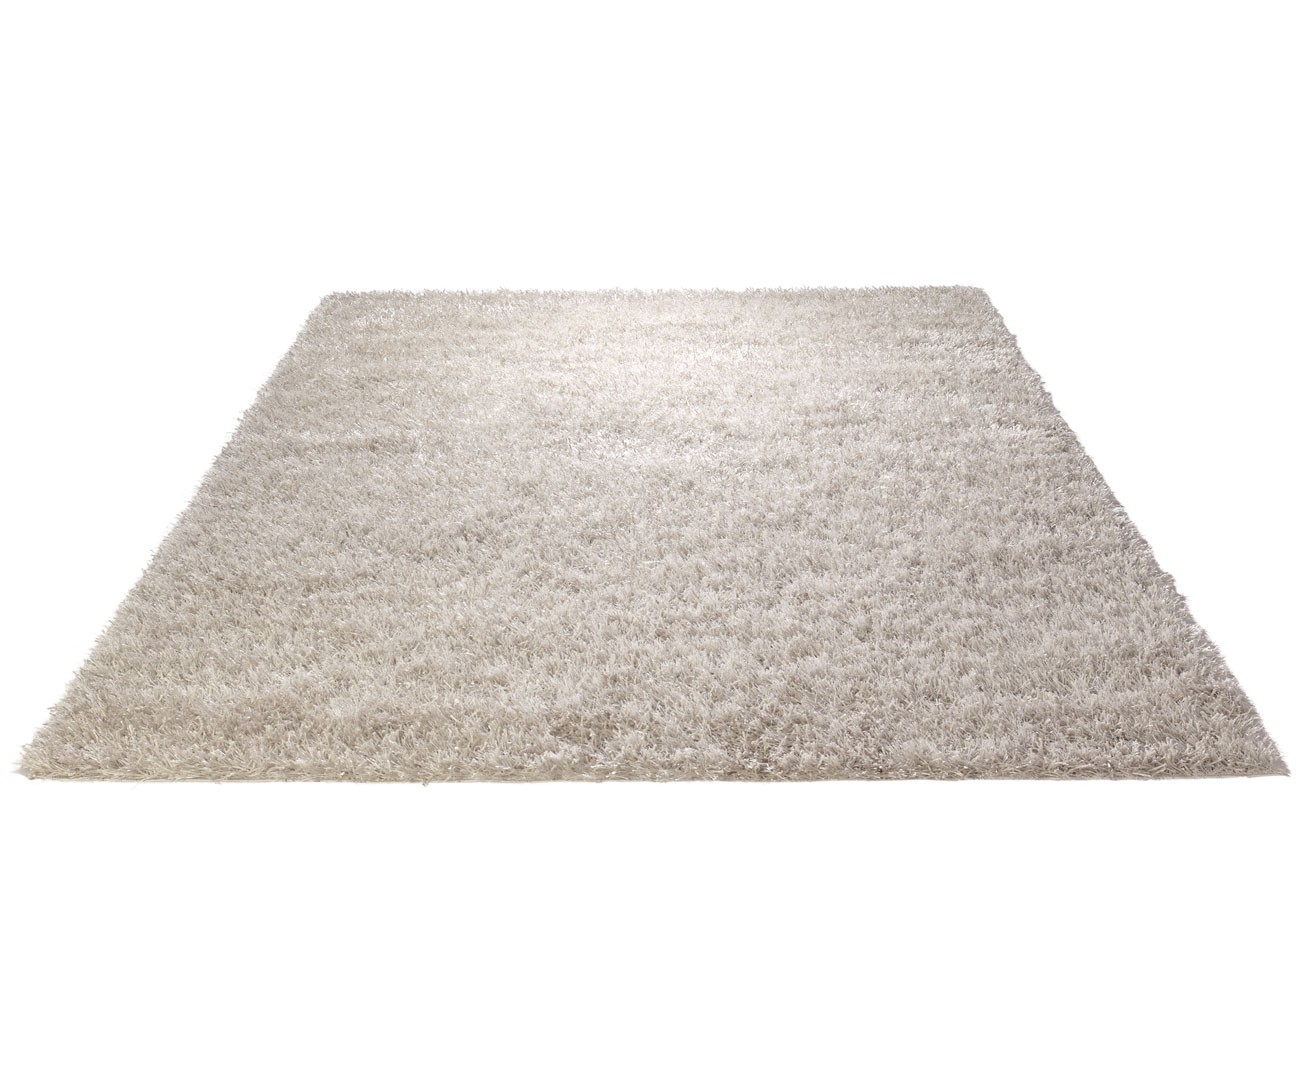 ikea tapis shaggy excellent tapis pour salon ikea tapis design multicolore pour salle manger. Black Bedroom Furniture Sets. Home Design Ideas